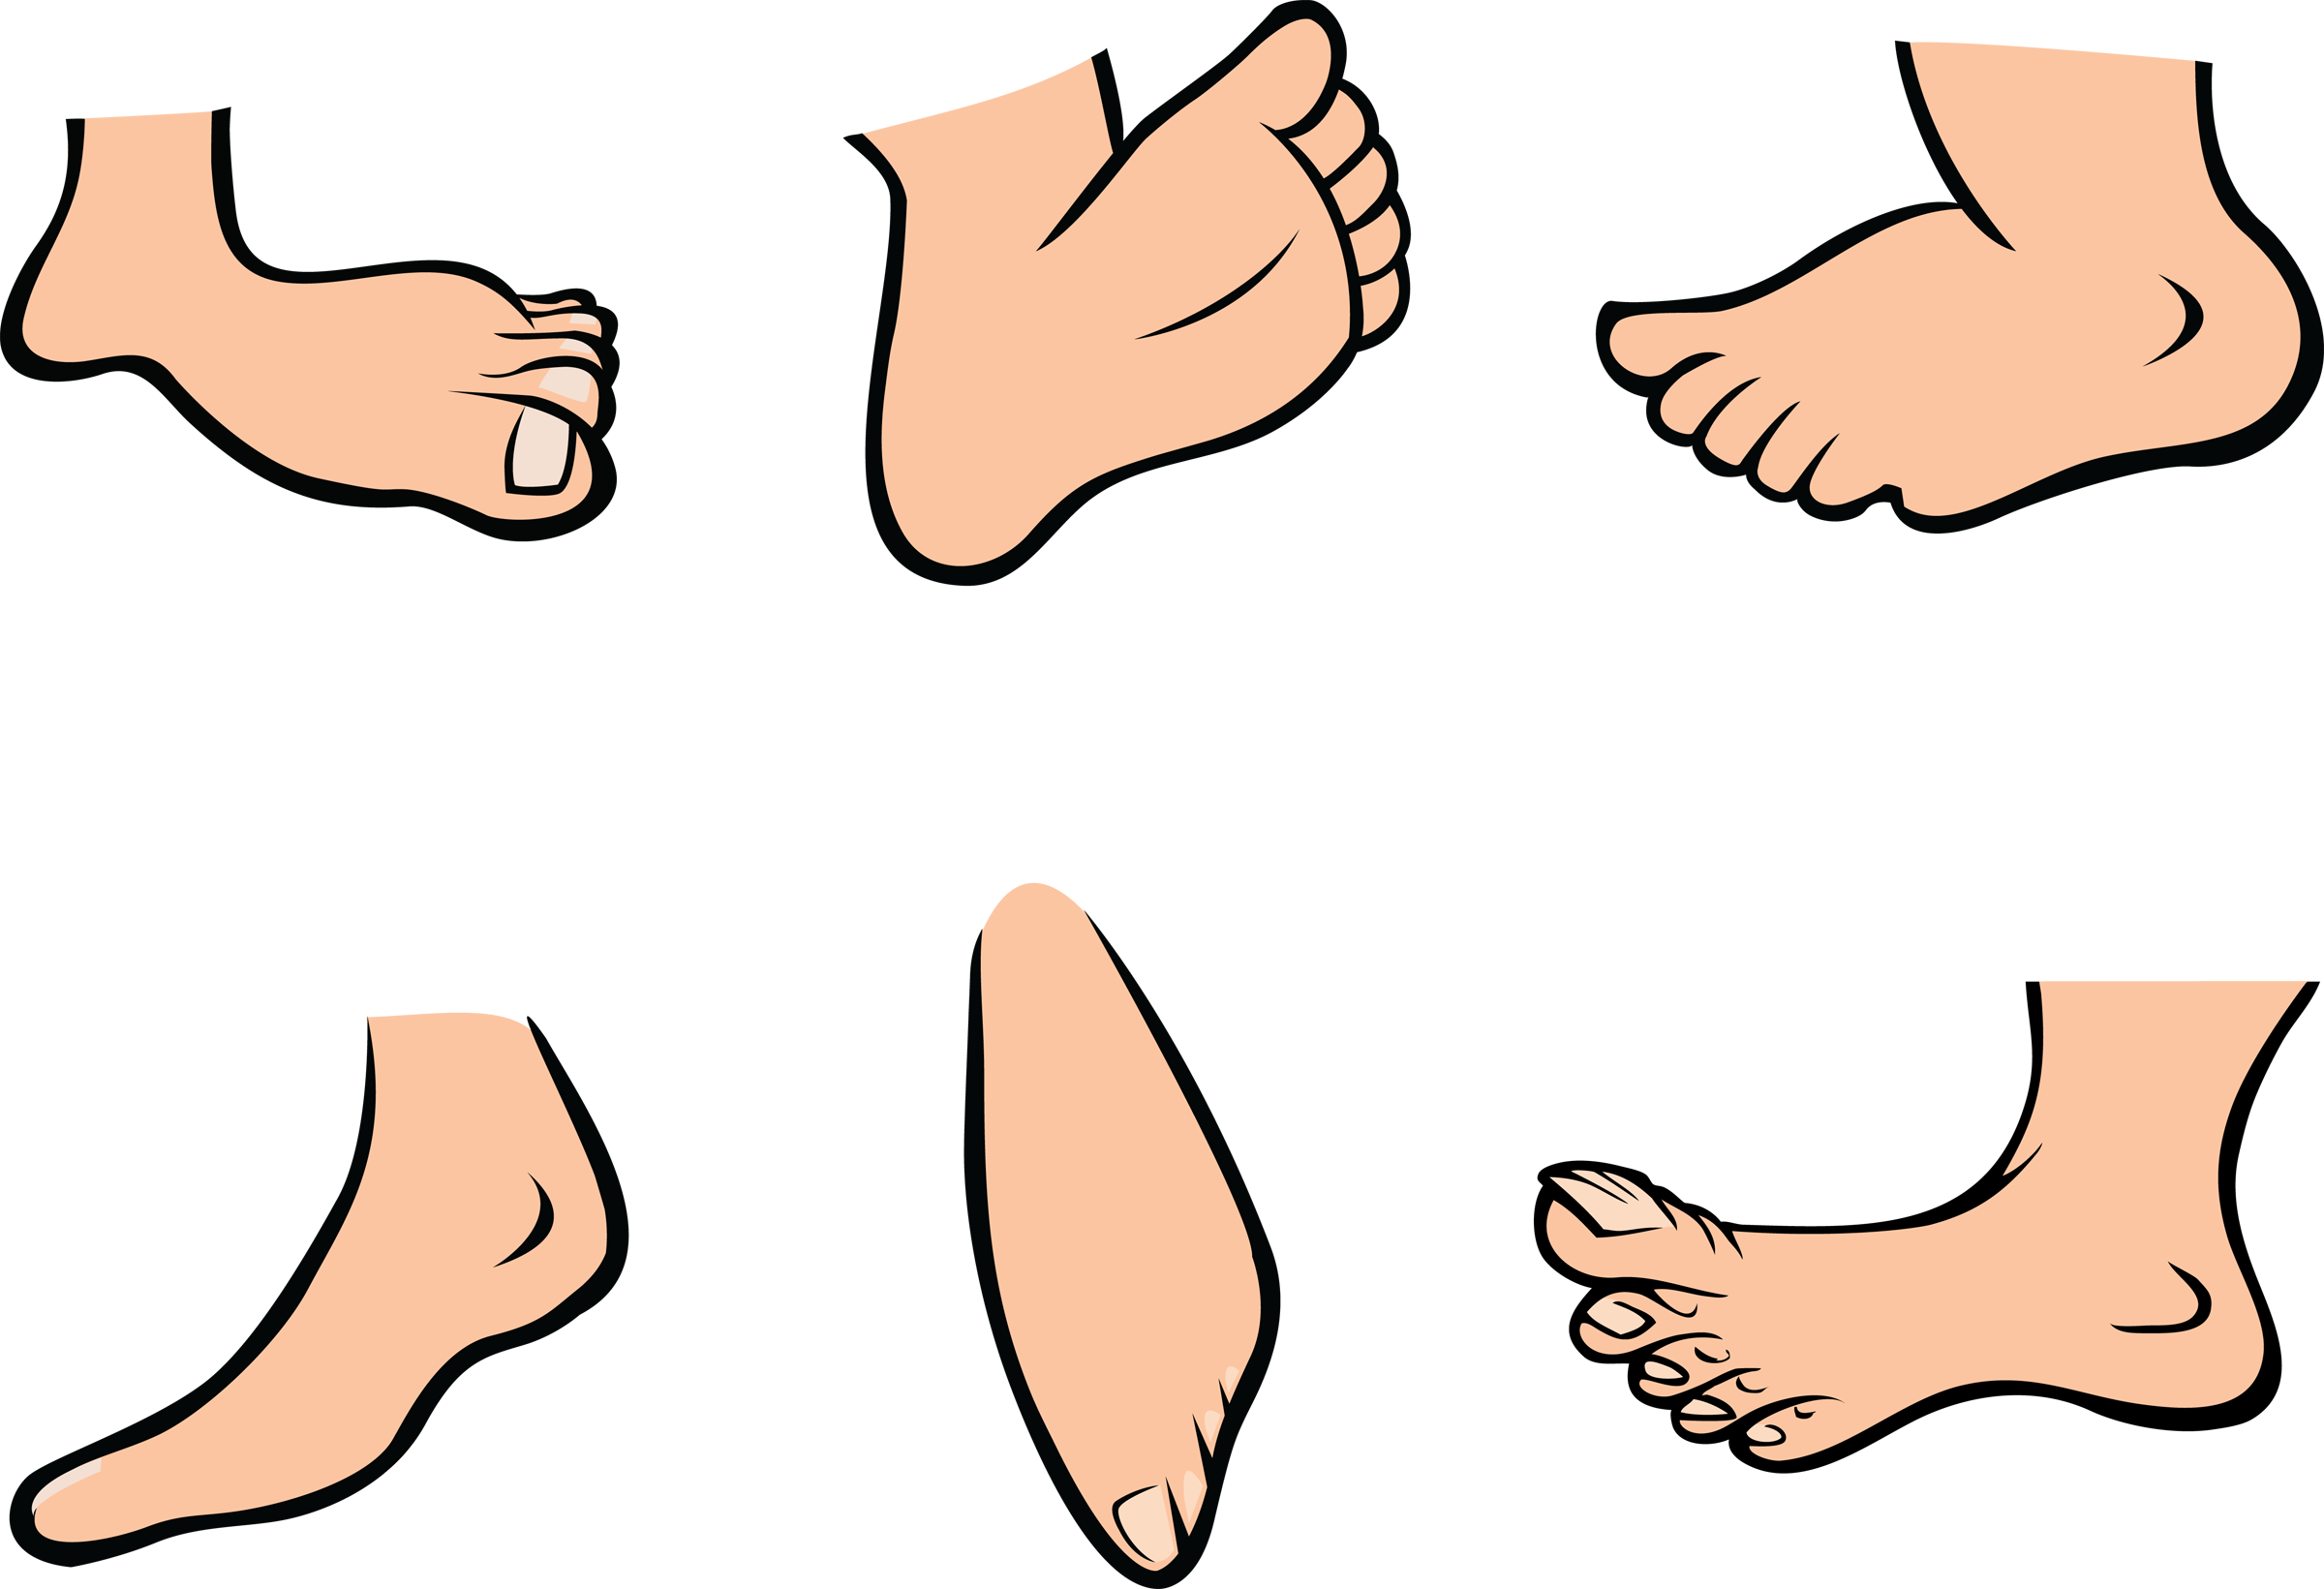 Cartoon foot png. Pictures of feet clipart